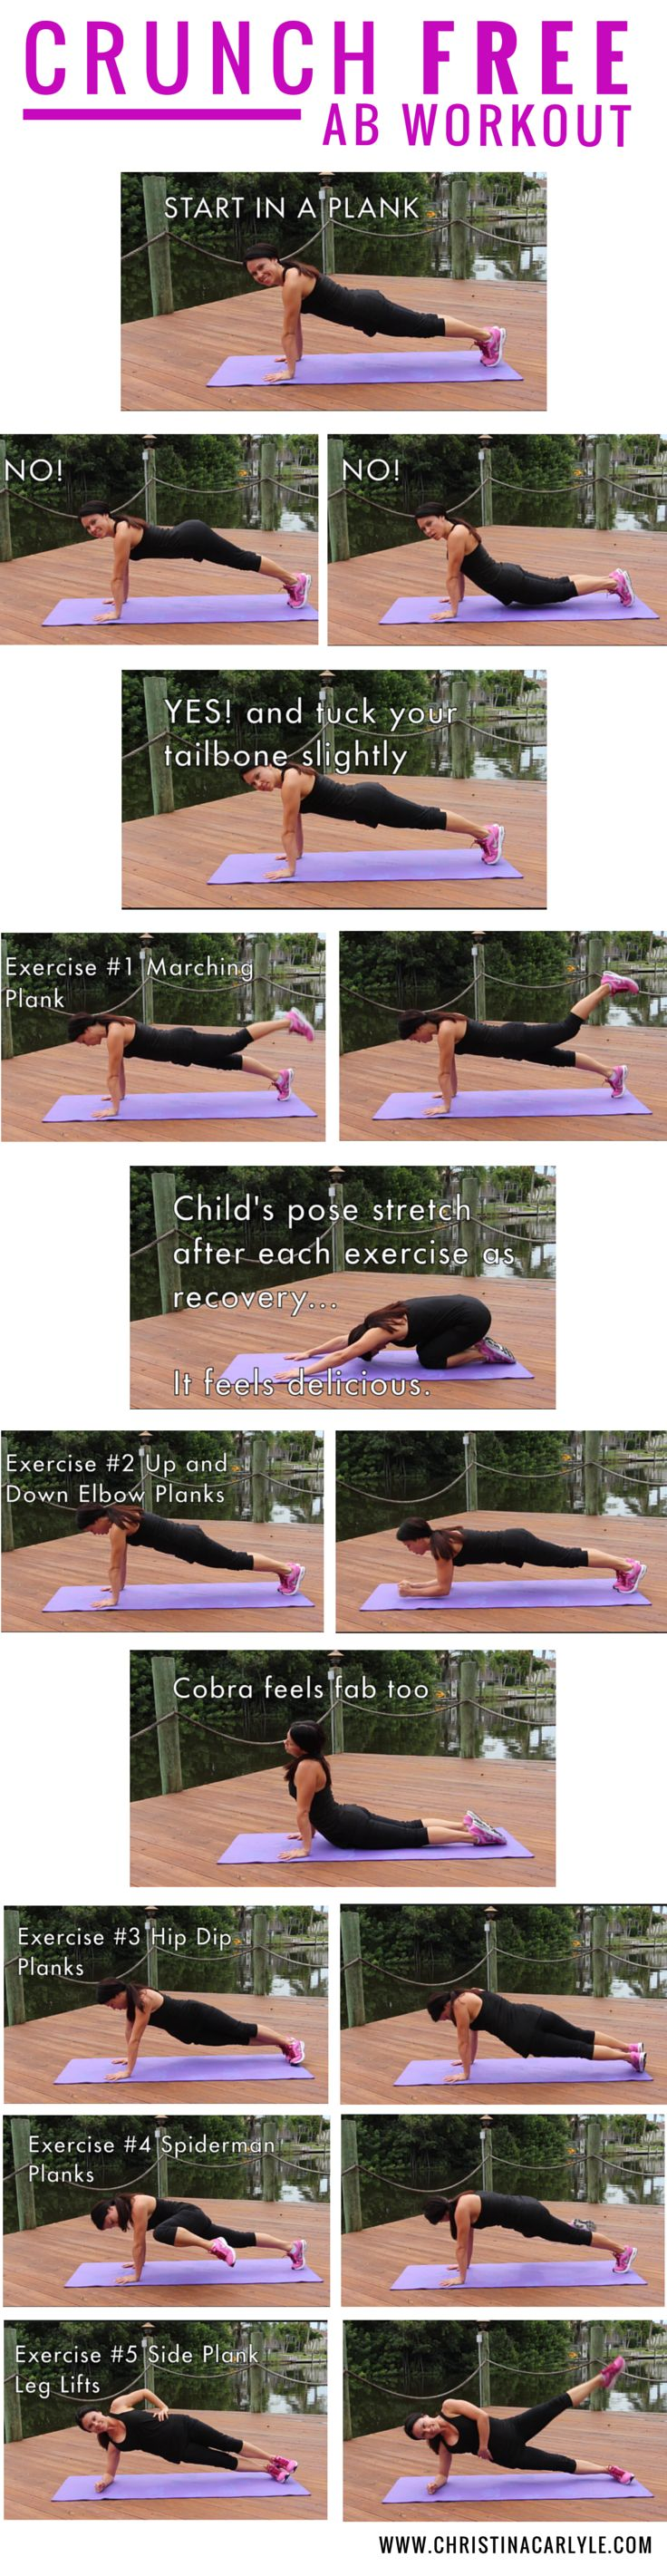 Crunch free ab workout for women - that gets real results - and won't kill your back!